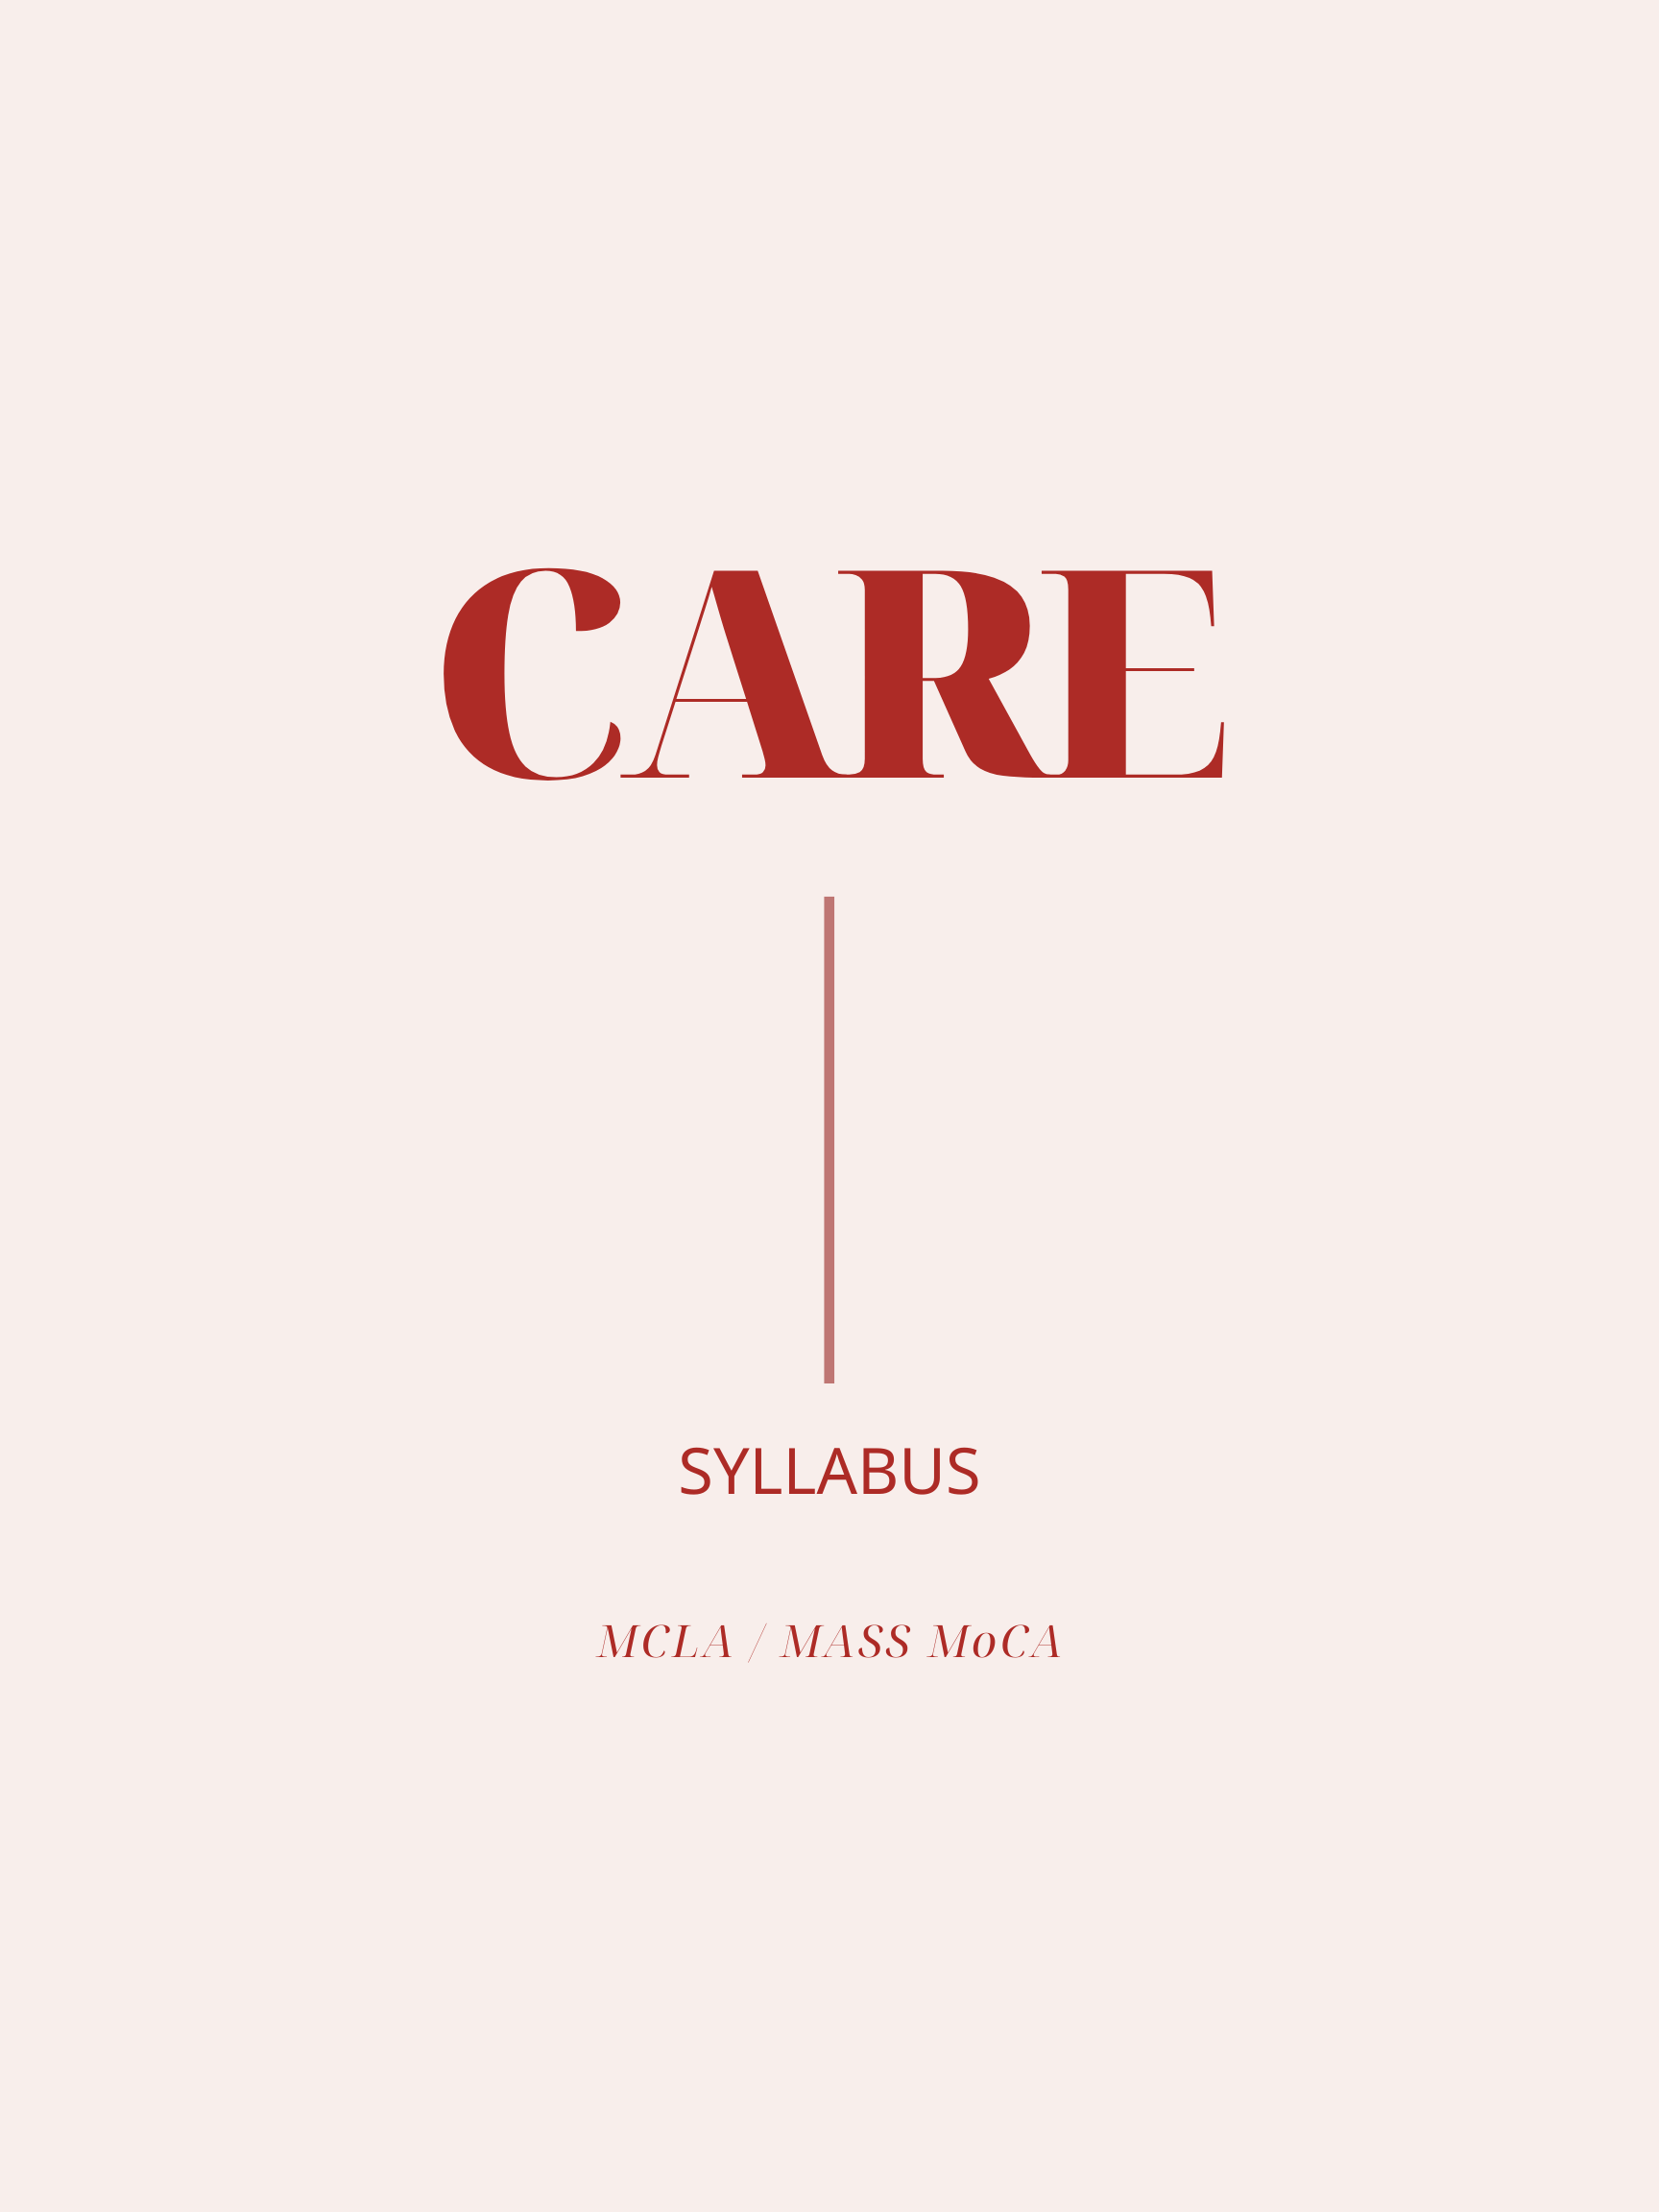 CARE SYLLABUS, a new justice-oriented public education and community resource, aims to explore the meaning and discourse around the concept of care through a multi-modal website with curated modules, original text, media, recordings, and virtual live events.